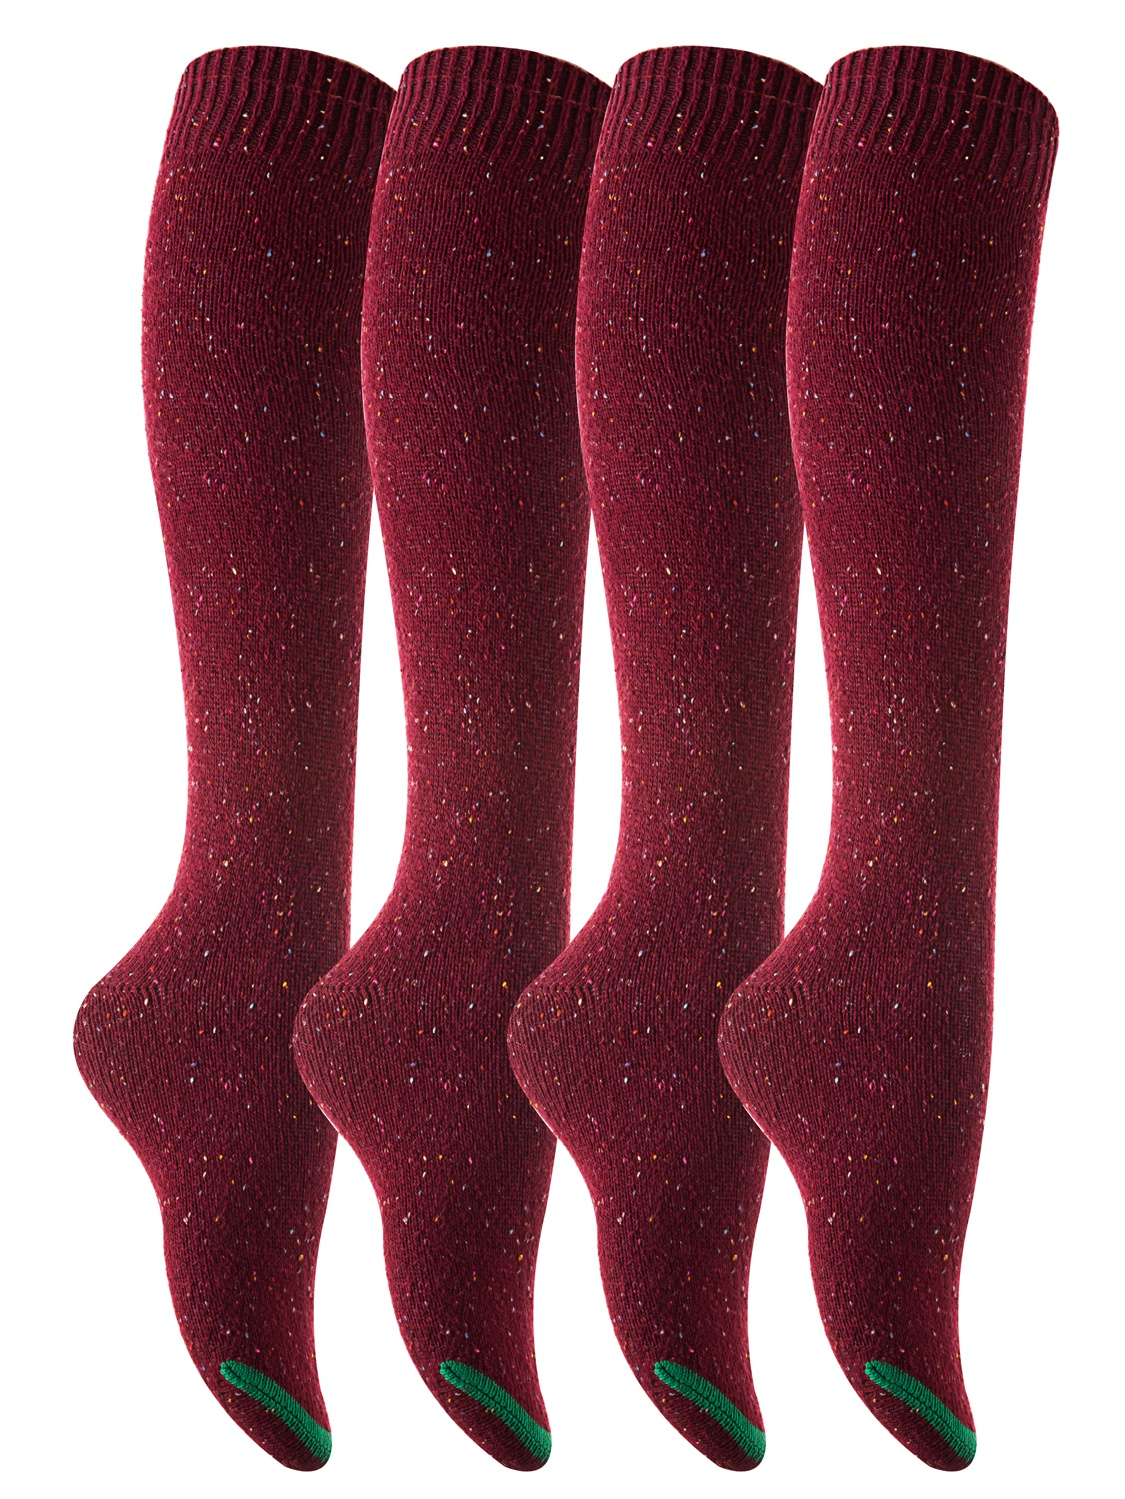 Lovely Annie Big Girl's 4 Pairs Pack Knee-High Cotton Boot Socks H158212 Size L/XL(Wine)